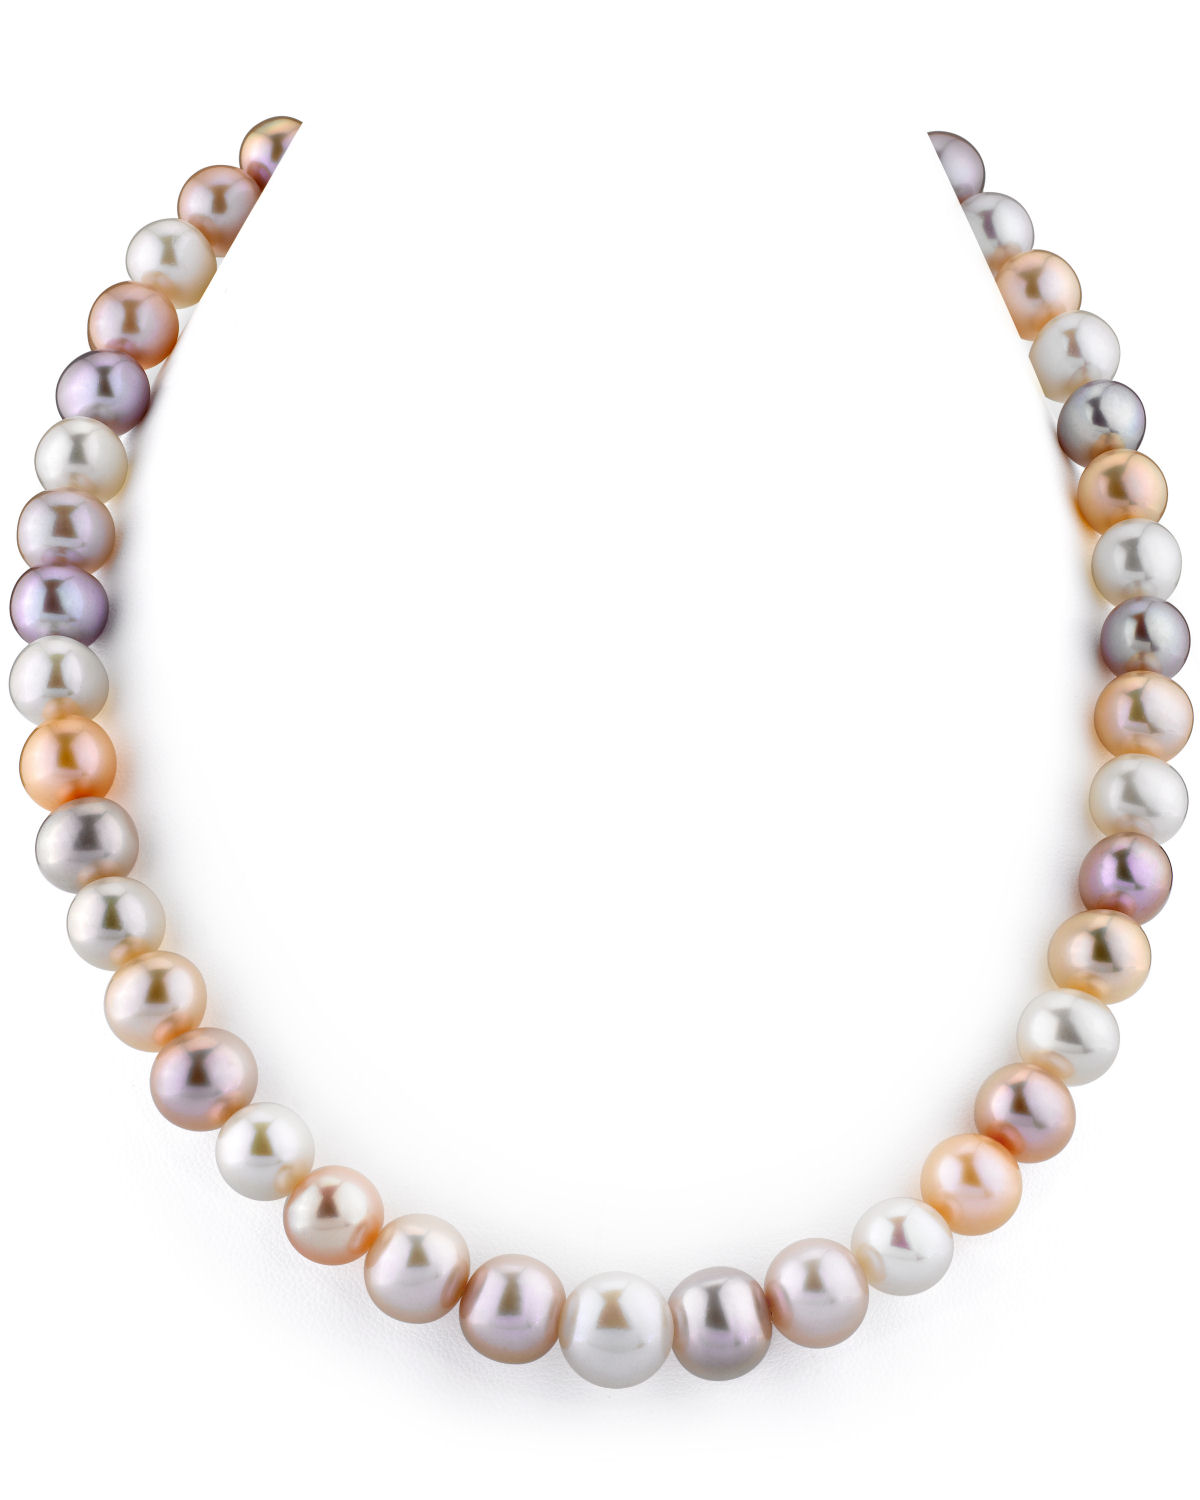 10-11mm Multicolor Freshwater Pearl Necklace